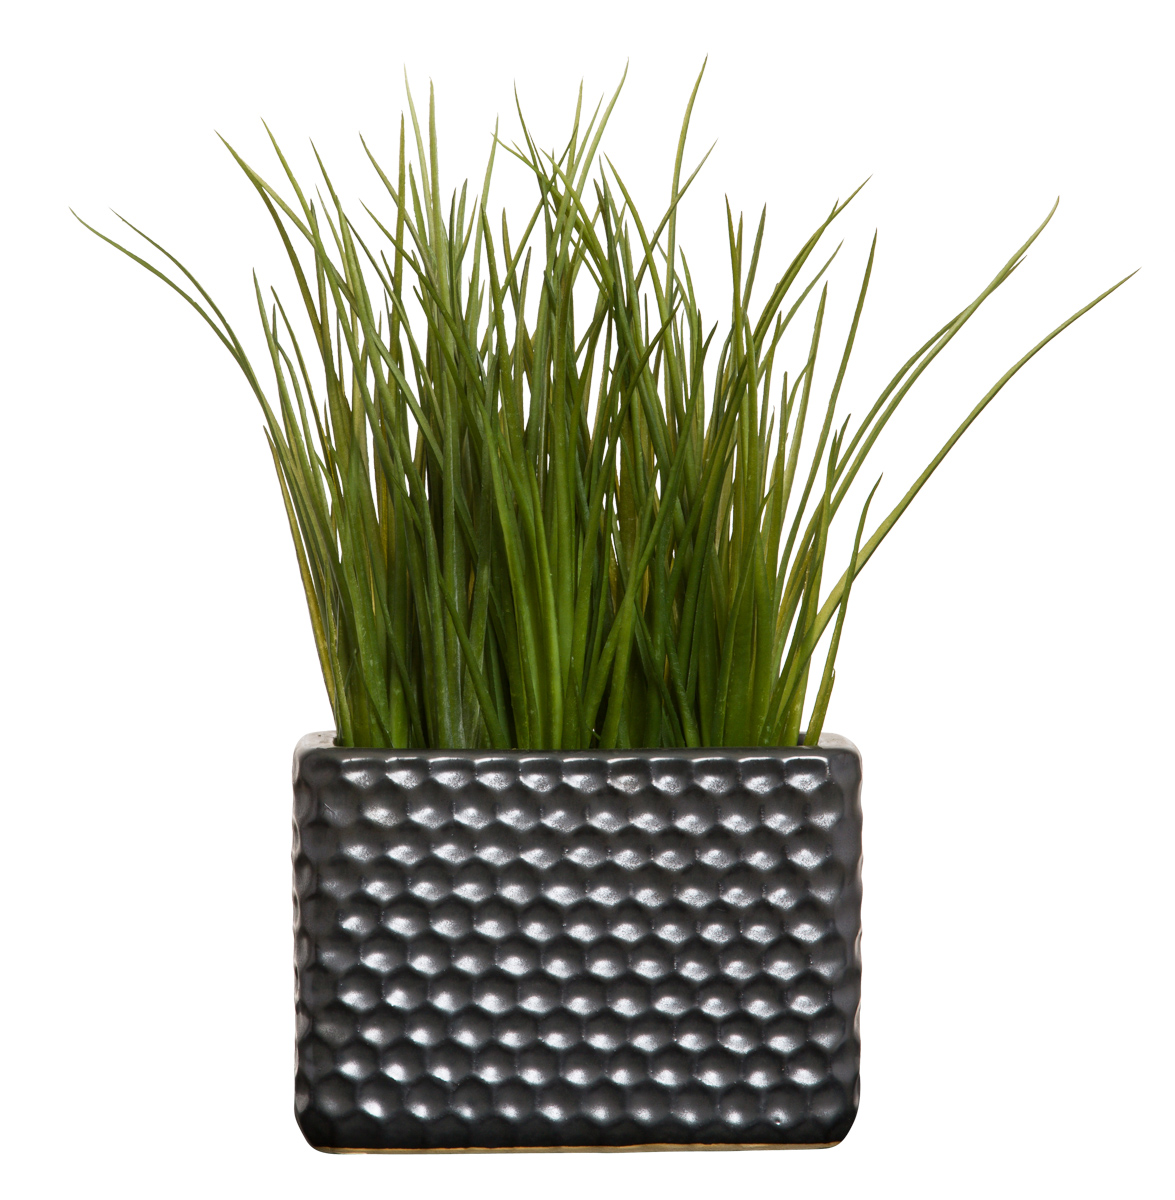 GRASS IN BLACK DIMPLED POT